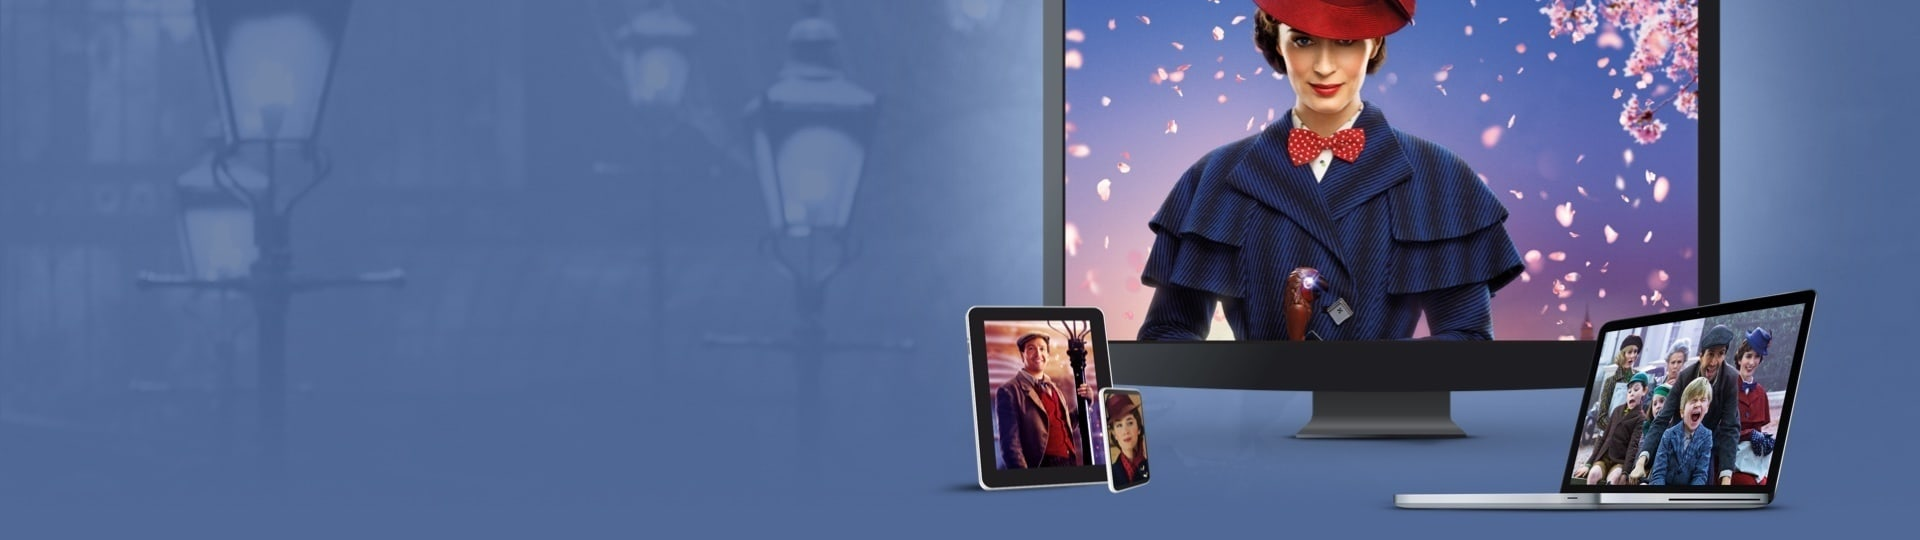 Le Retour de Mary Poppins | Disponible en achat digital